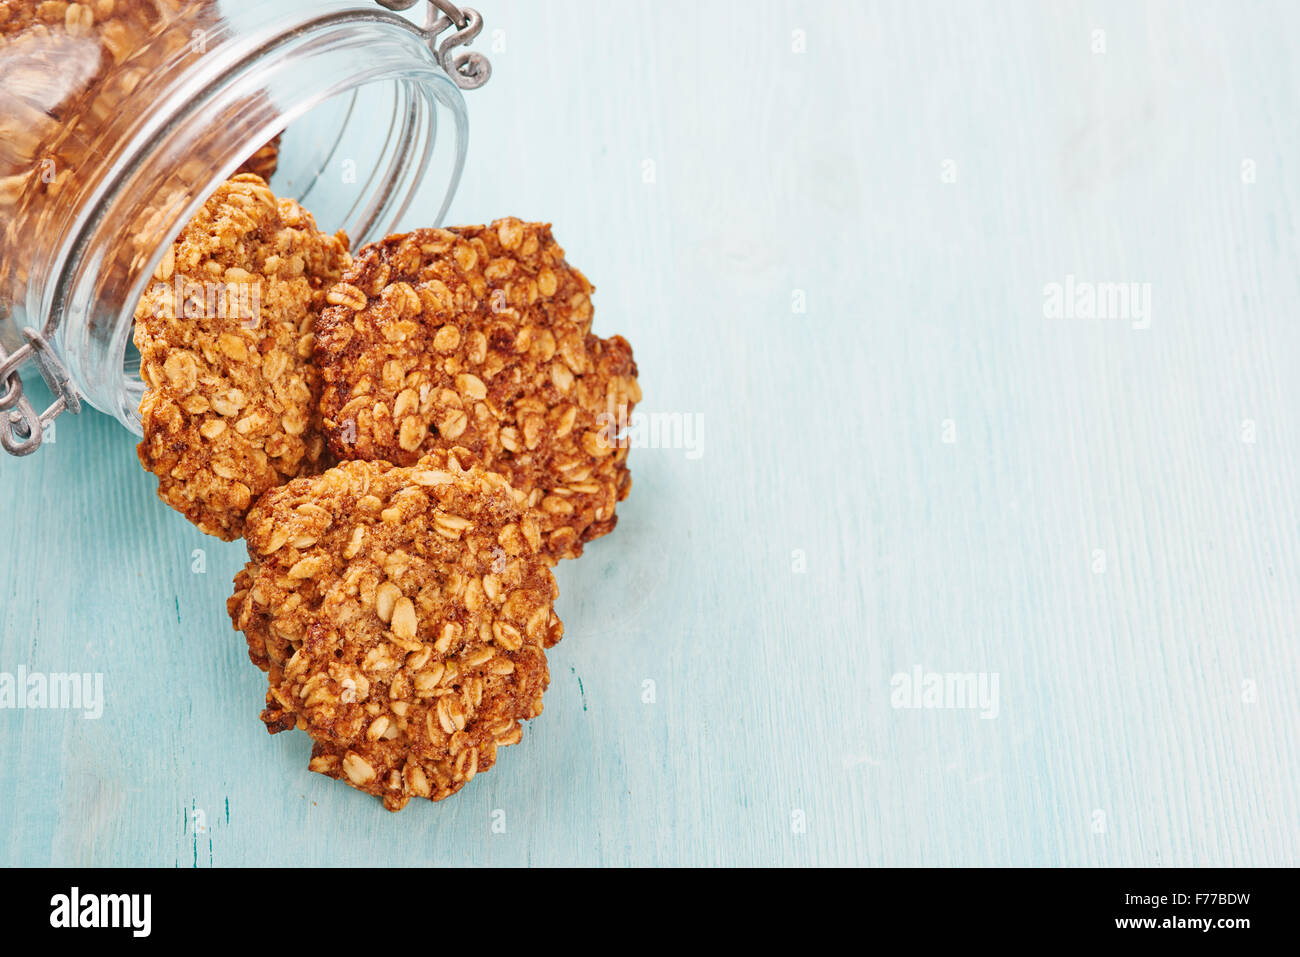 Homemade oatmeal banana cookies, jar and blu wooden table - Stock Image